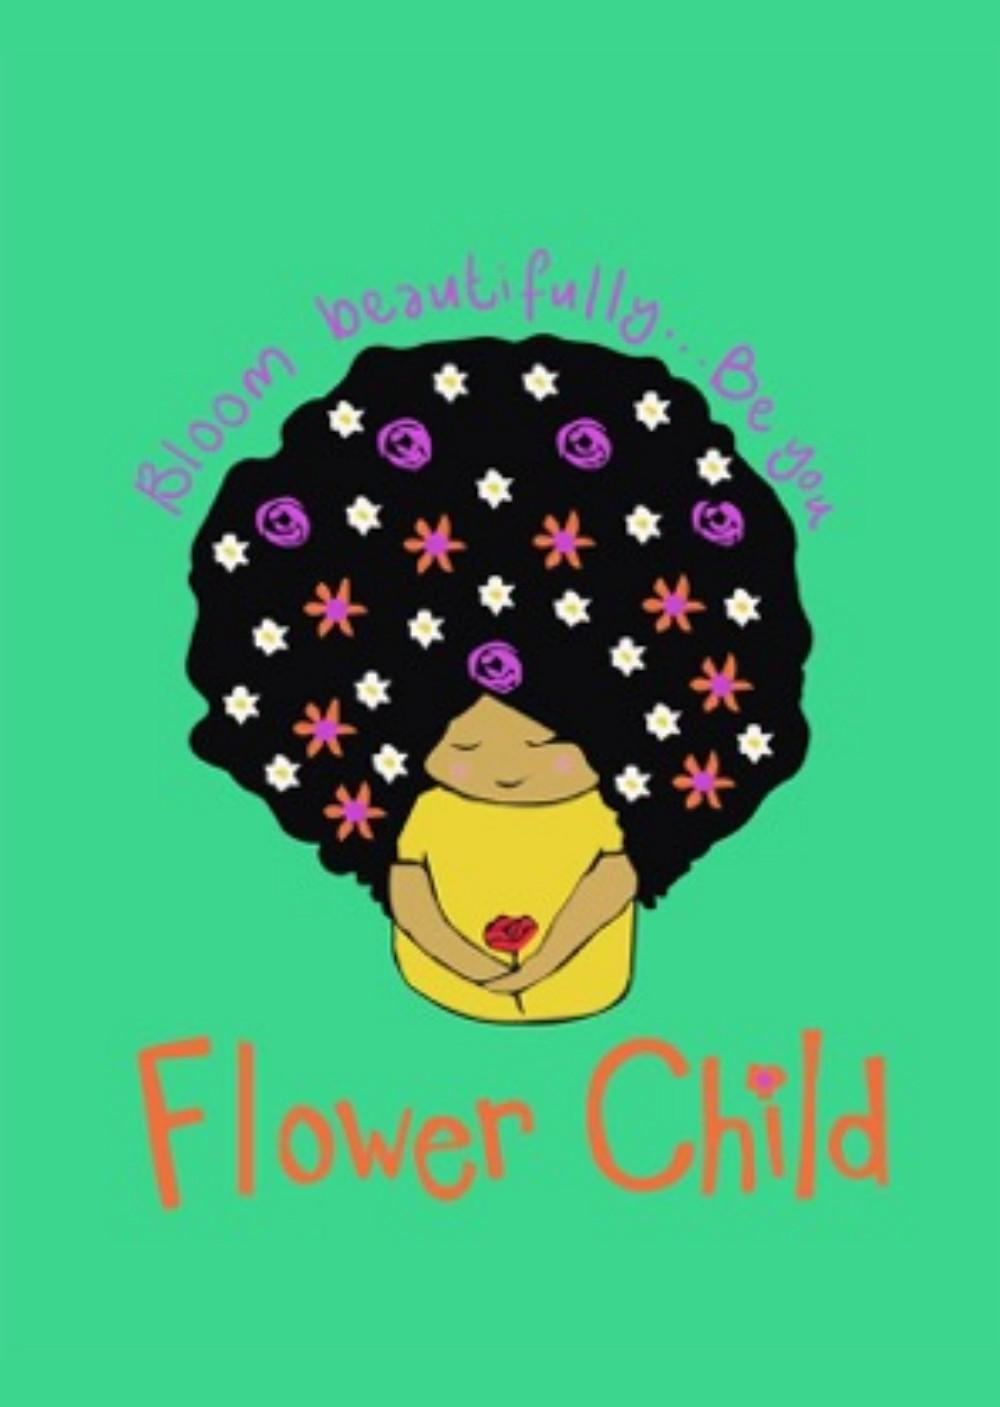 afro girl with flowers